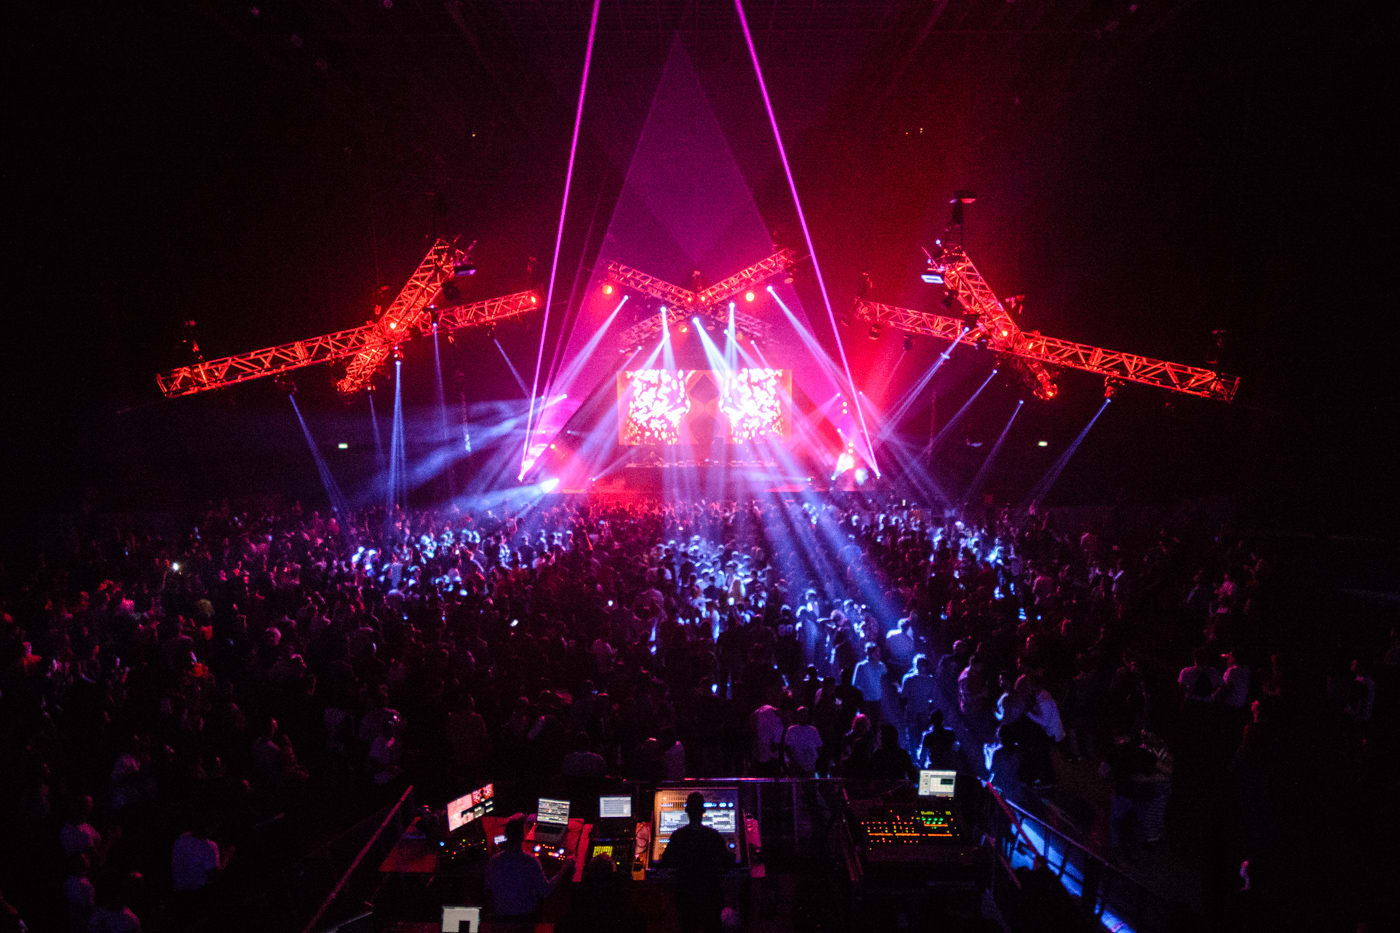 winterparty-at-3arena-dublin-30-10-2016-by-sean-smyth-25-of-53